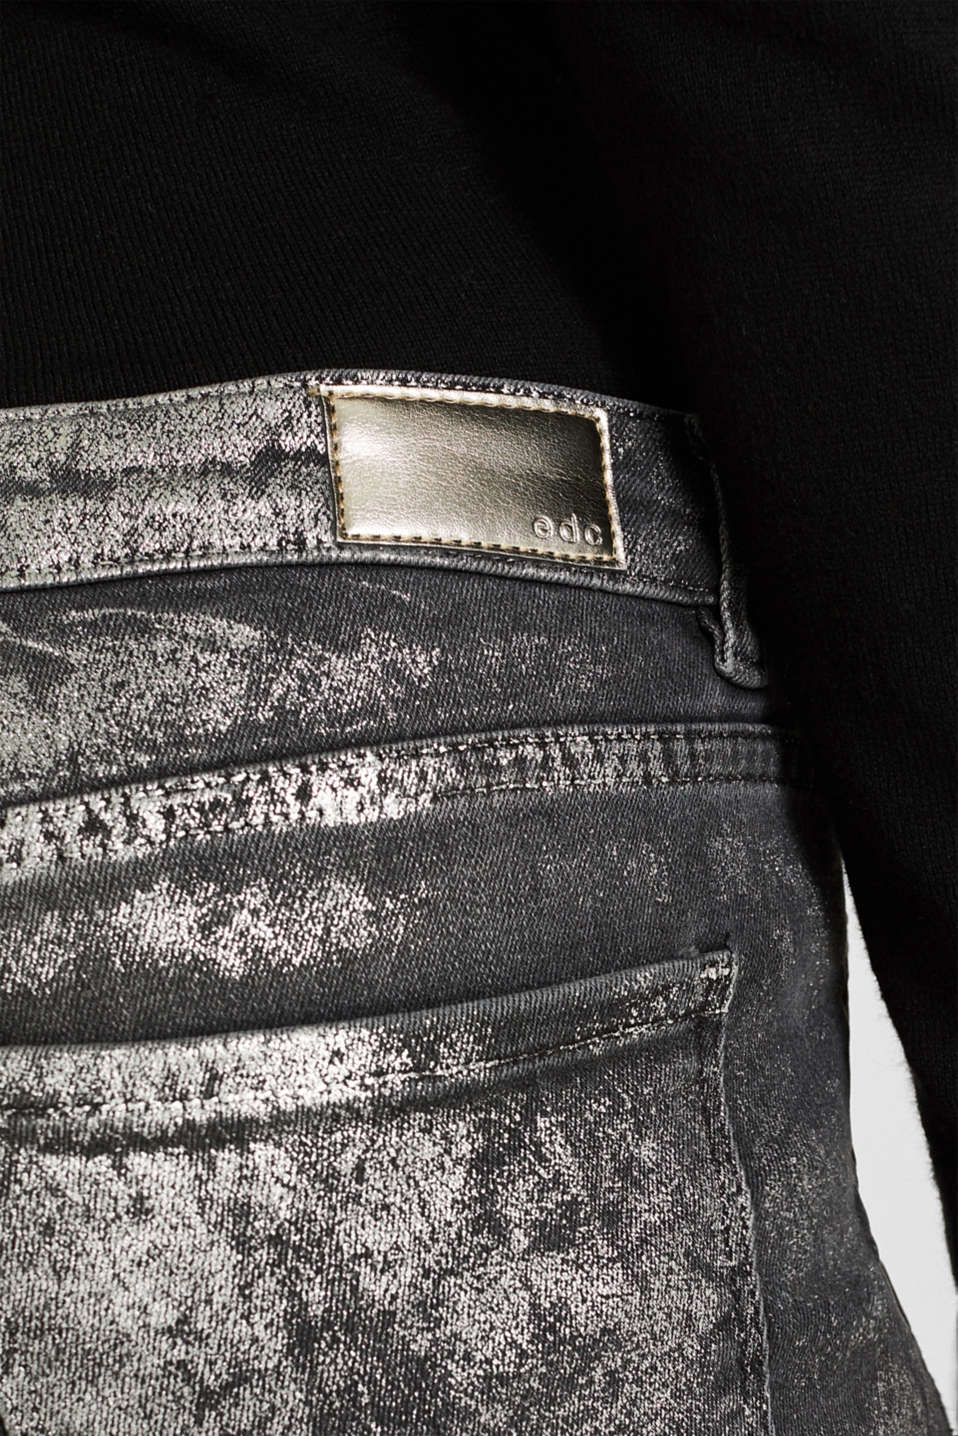 Pants denim, BLACK MEDIUM WASH, detail image number 2